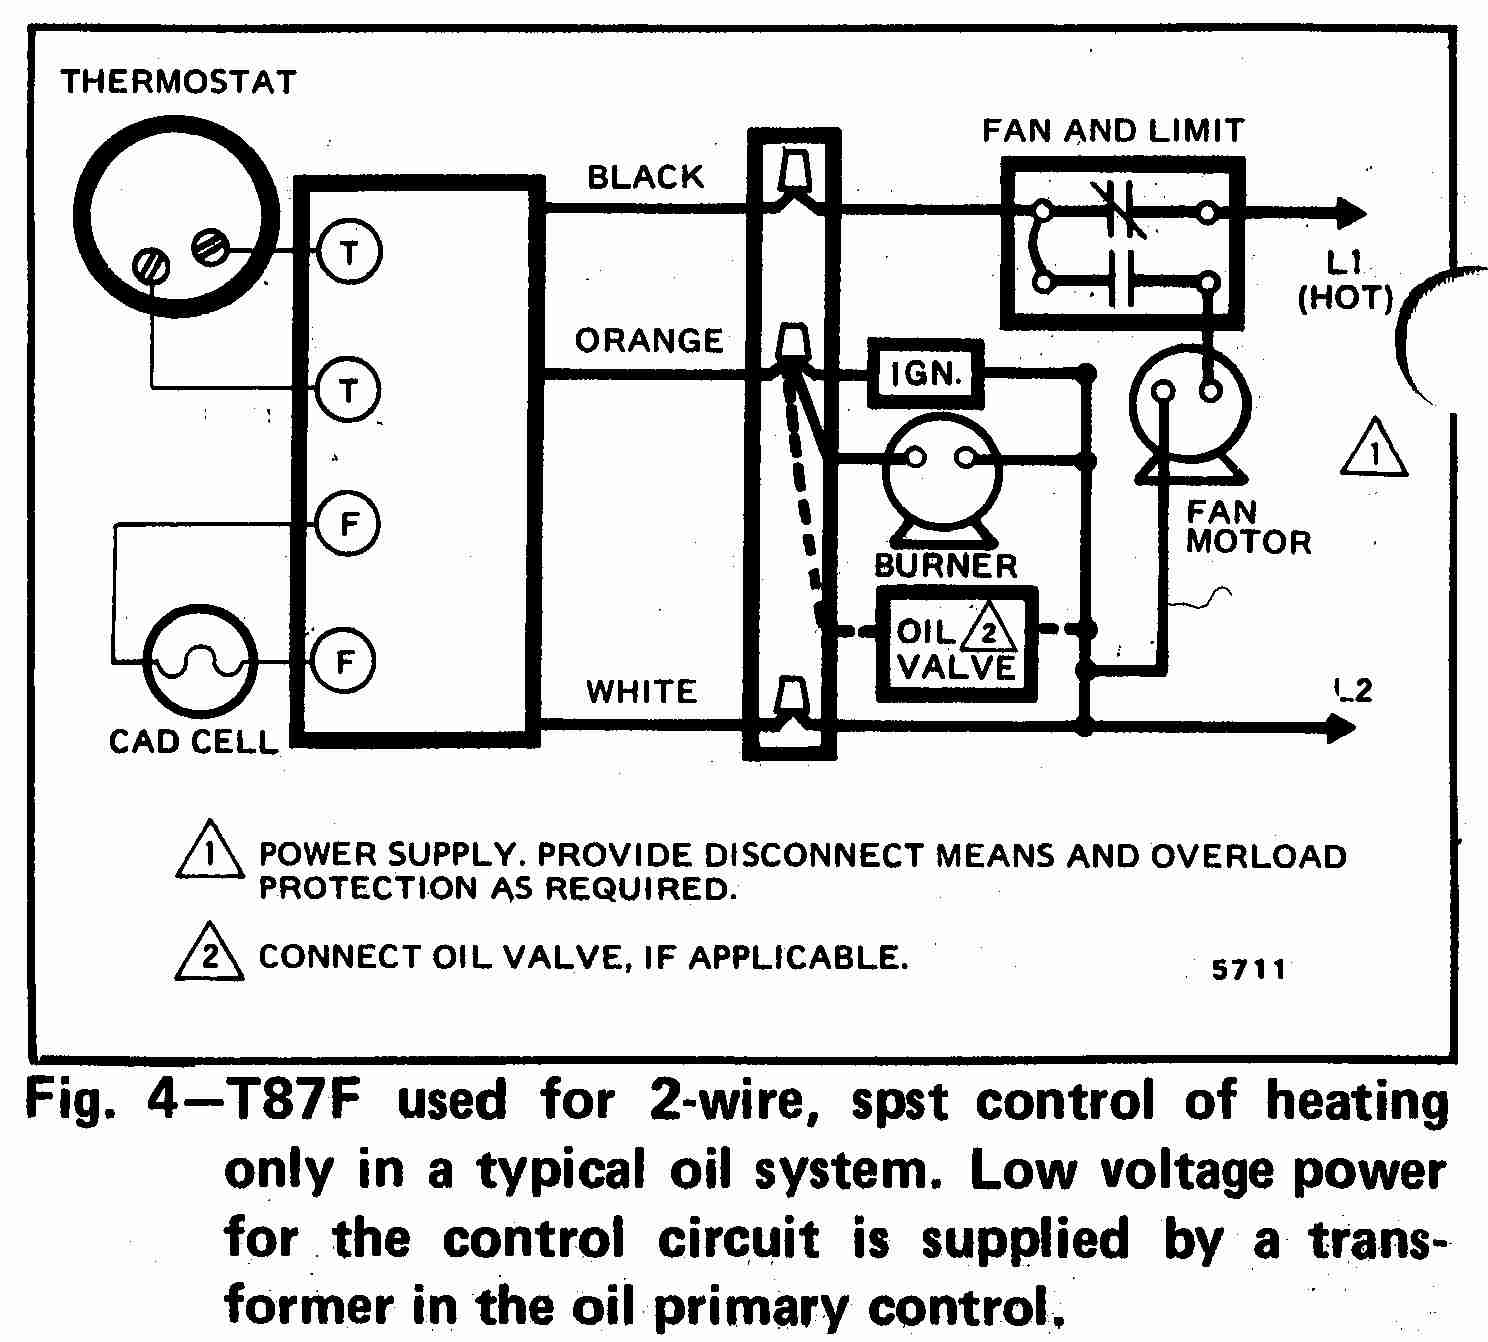 TT_T87F_0002_2W_DJF room thermostat wiring diagrams for hvac systems honeywell rth2300b wiring diagram at virtualis.co